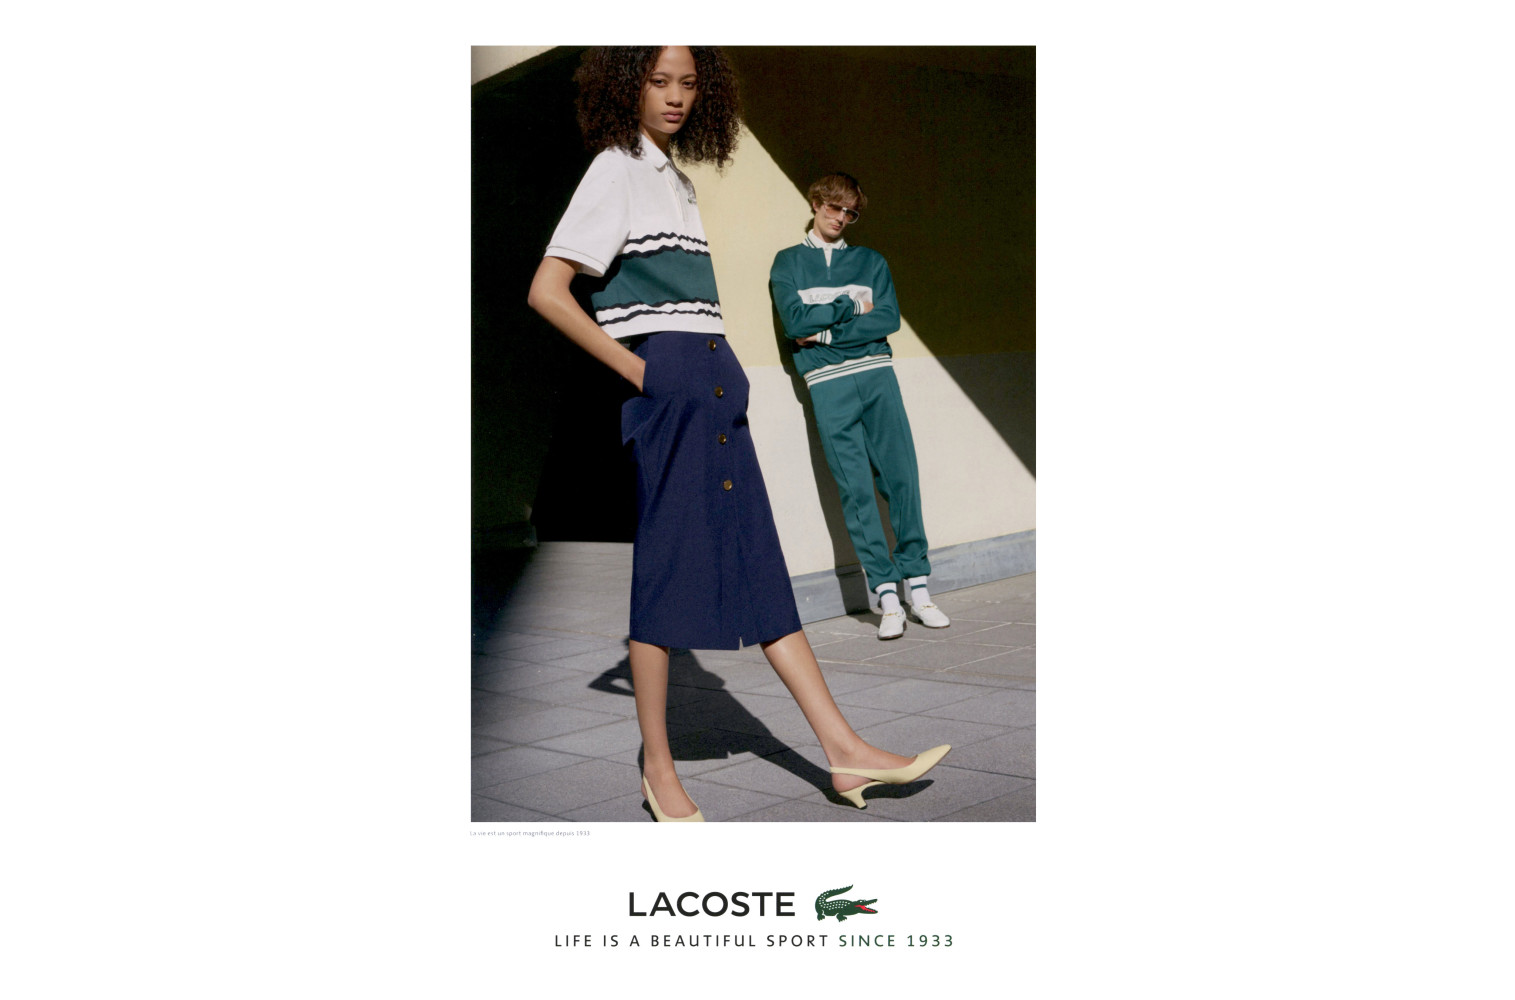 Lacoste SS18 campaign